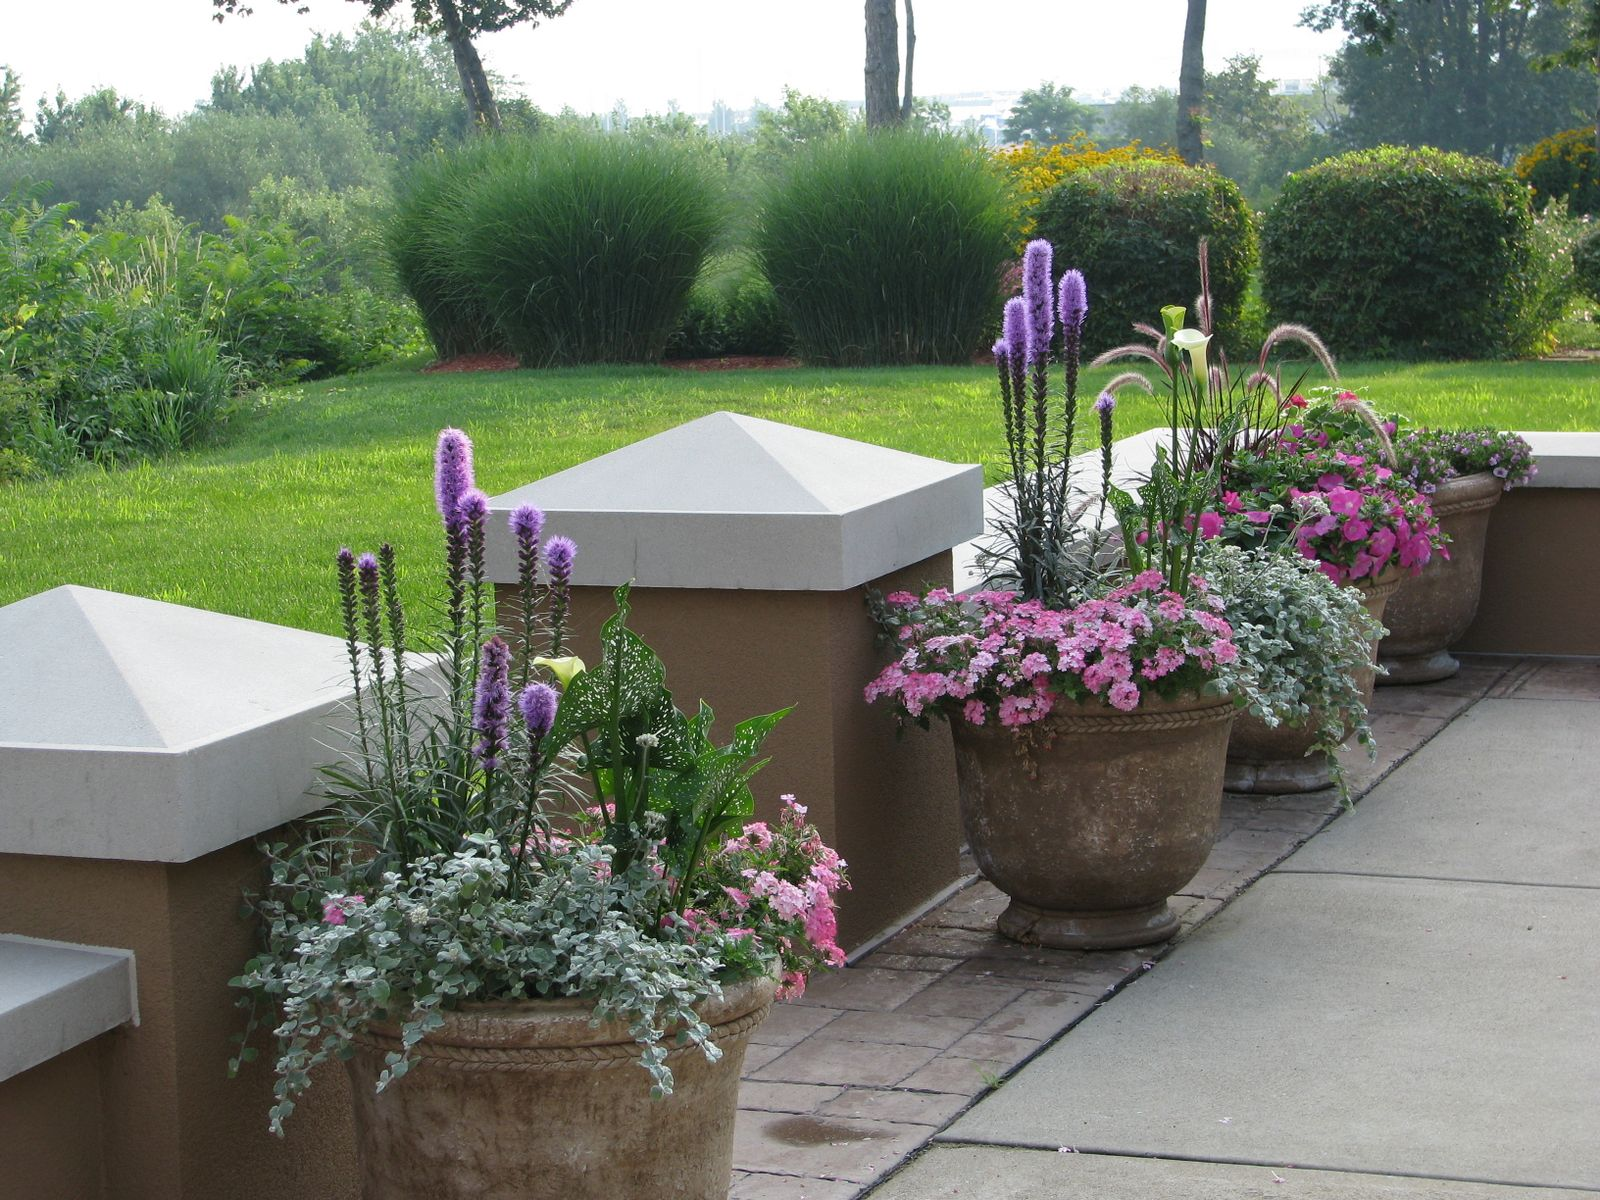 Ideas for a slope Landscaping grasses with purple flowers